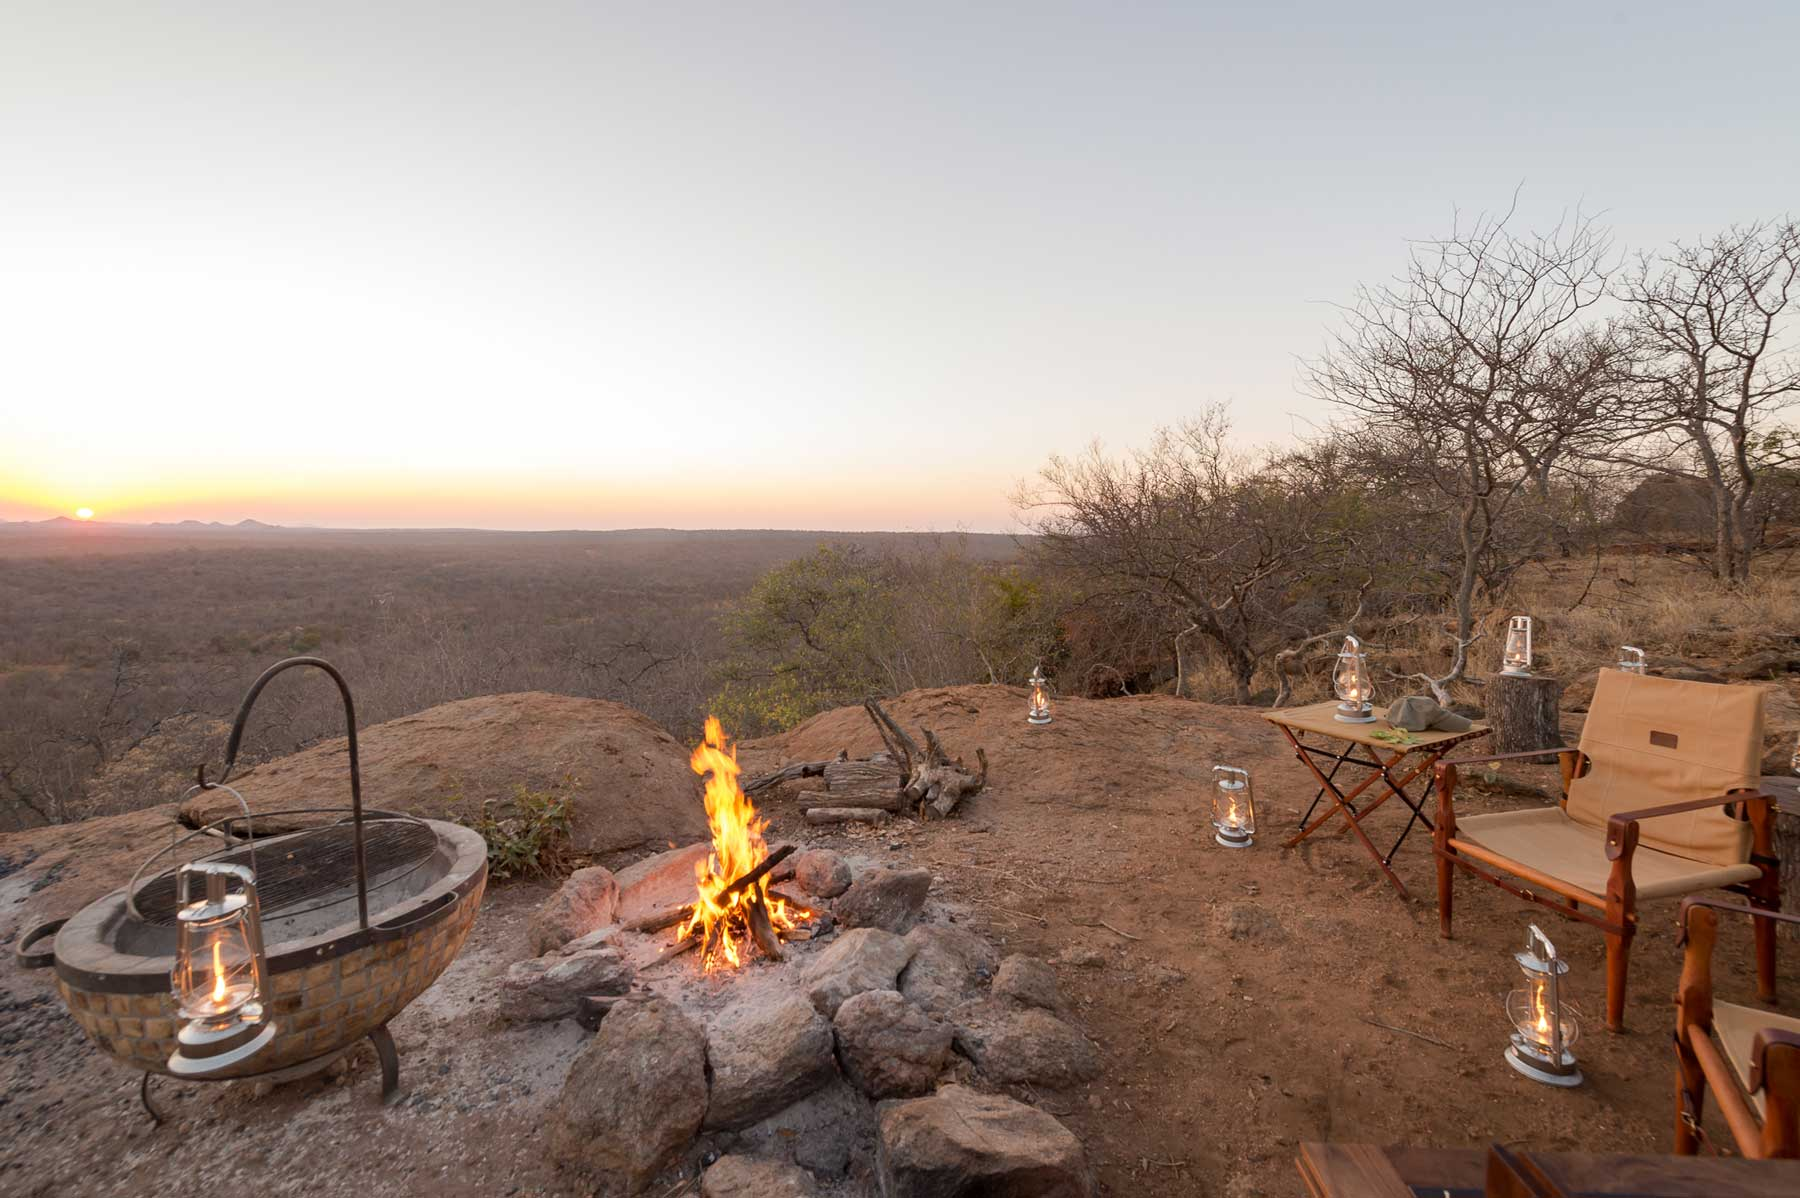 Sundowners at Maseke Game Reserve